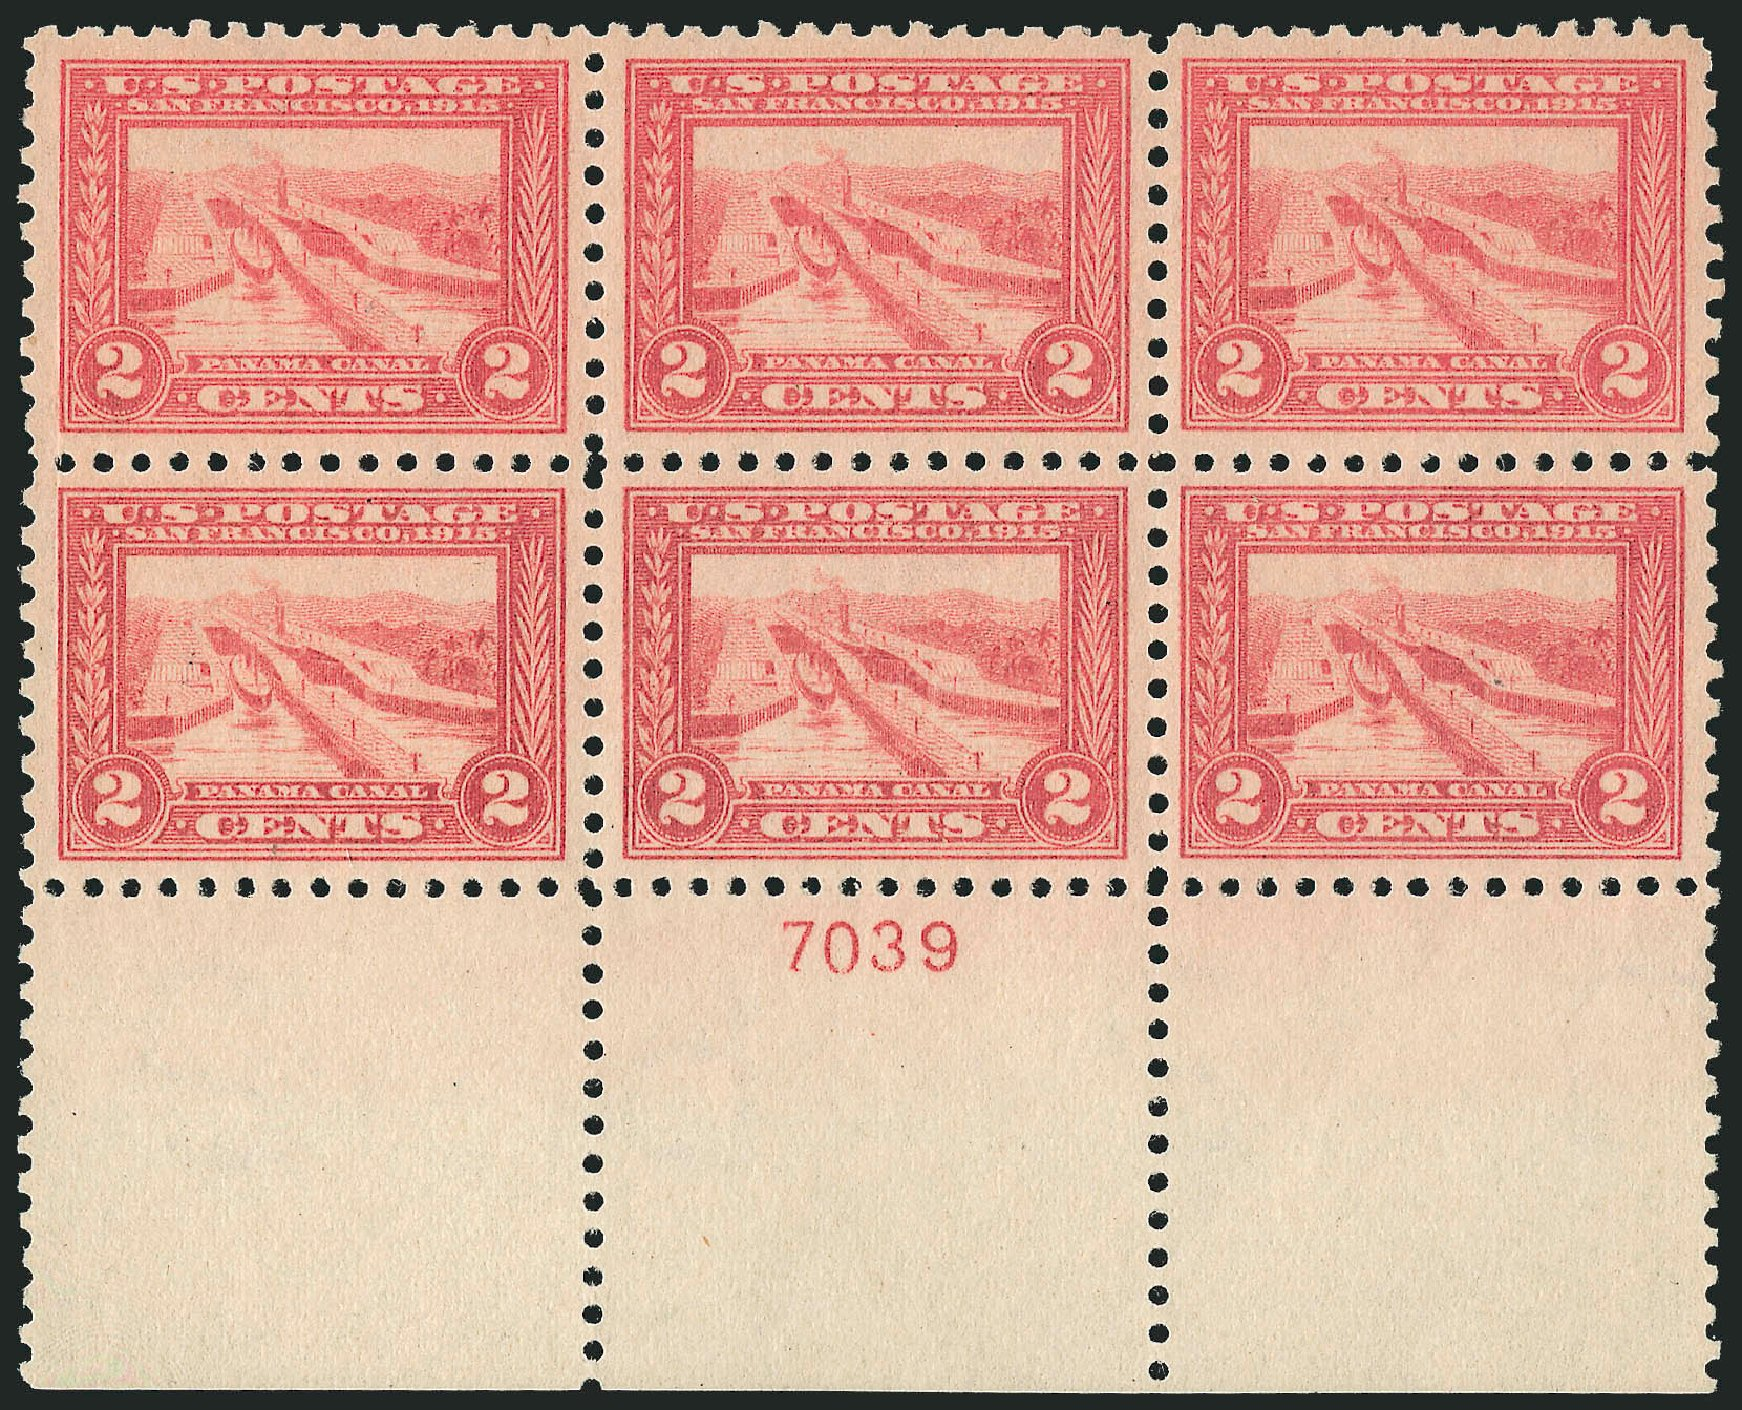 US Stamp Price Scott Cat. 402 - 2c 1915 Panama-Pacific Exposition. Robert Siegel Auction Galleries, Feb 2015, Sale 1093, Lot 245